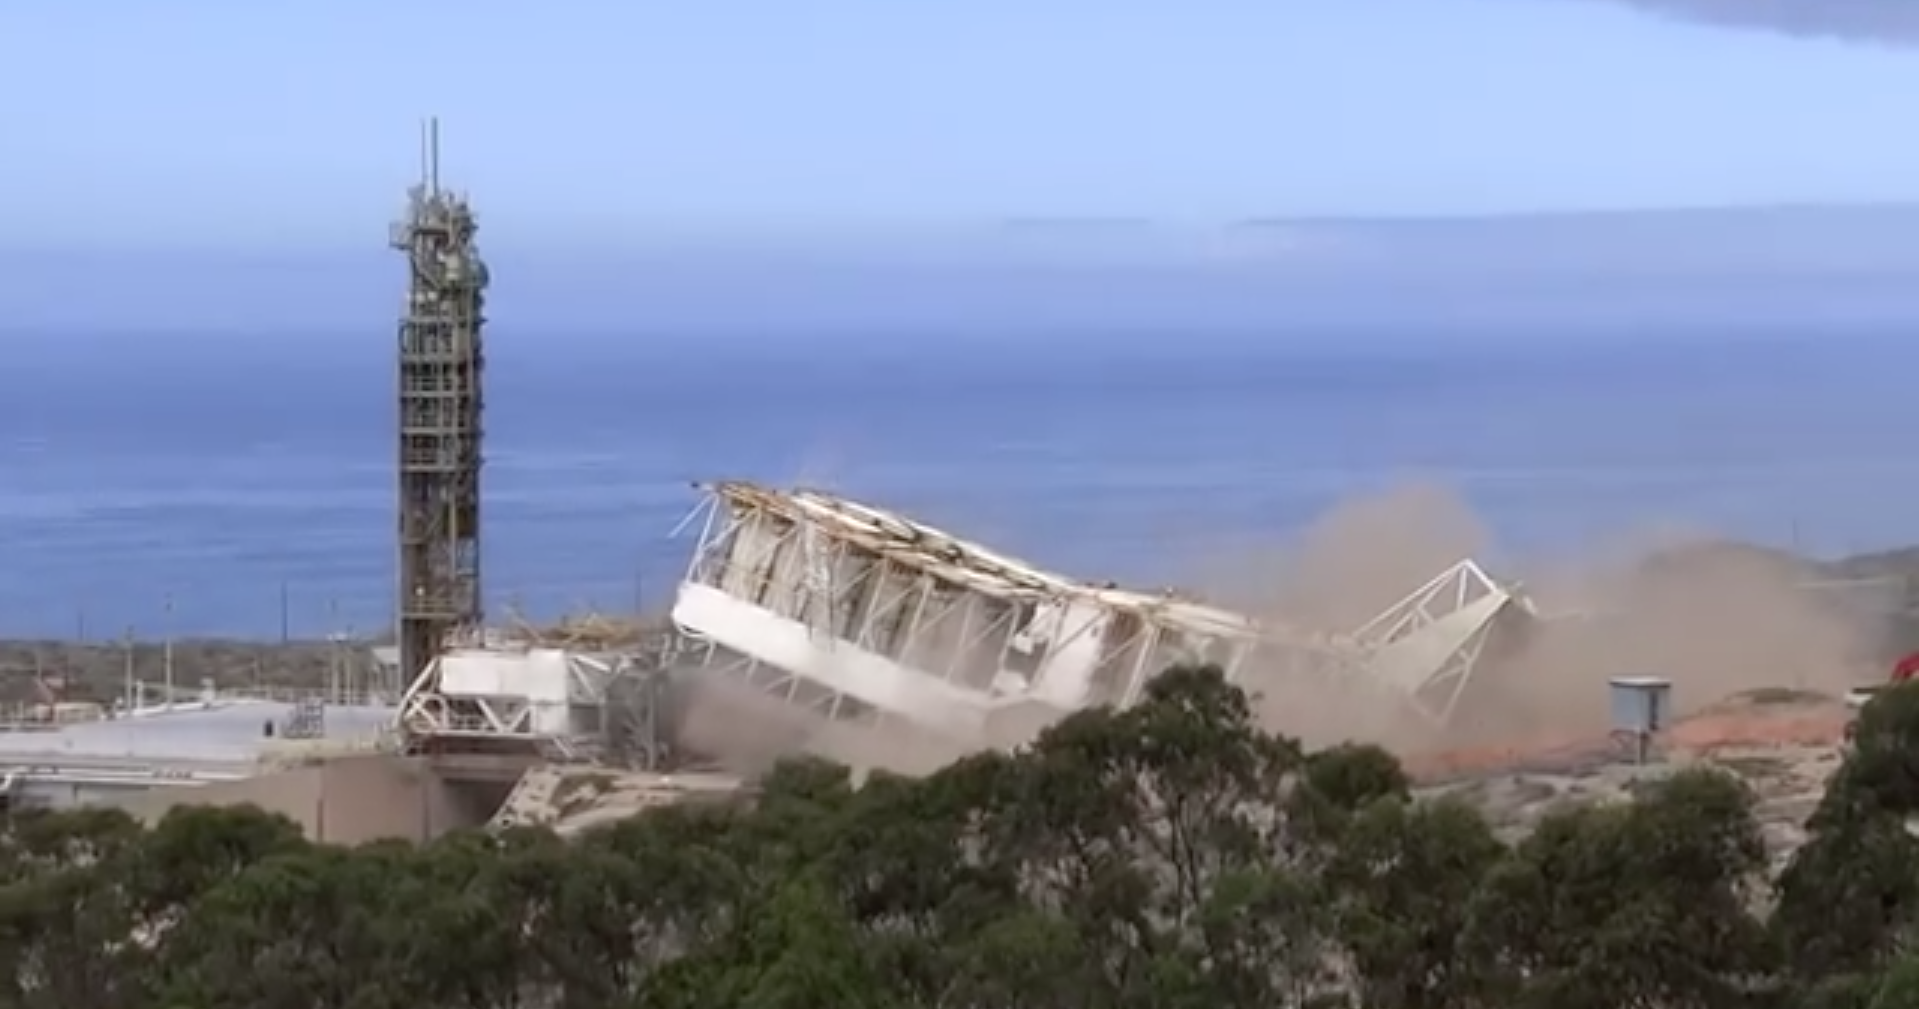 SpaceX Leasing Second Pad at Vandenberg